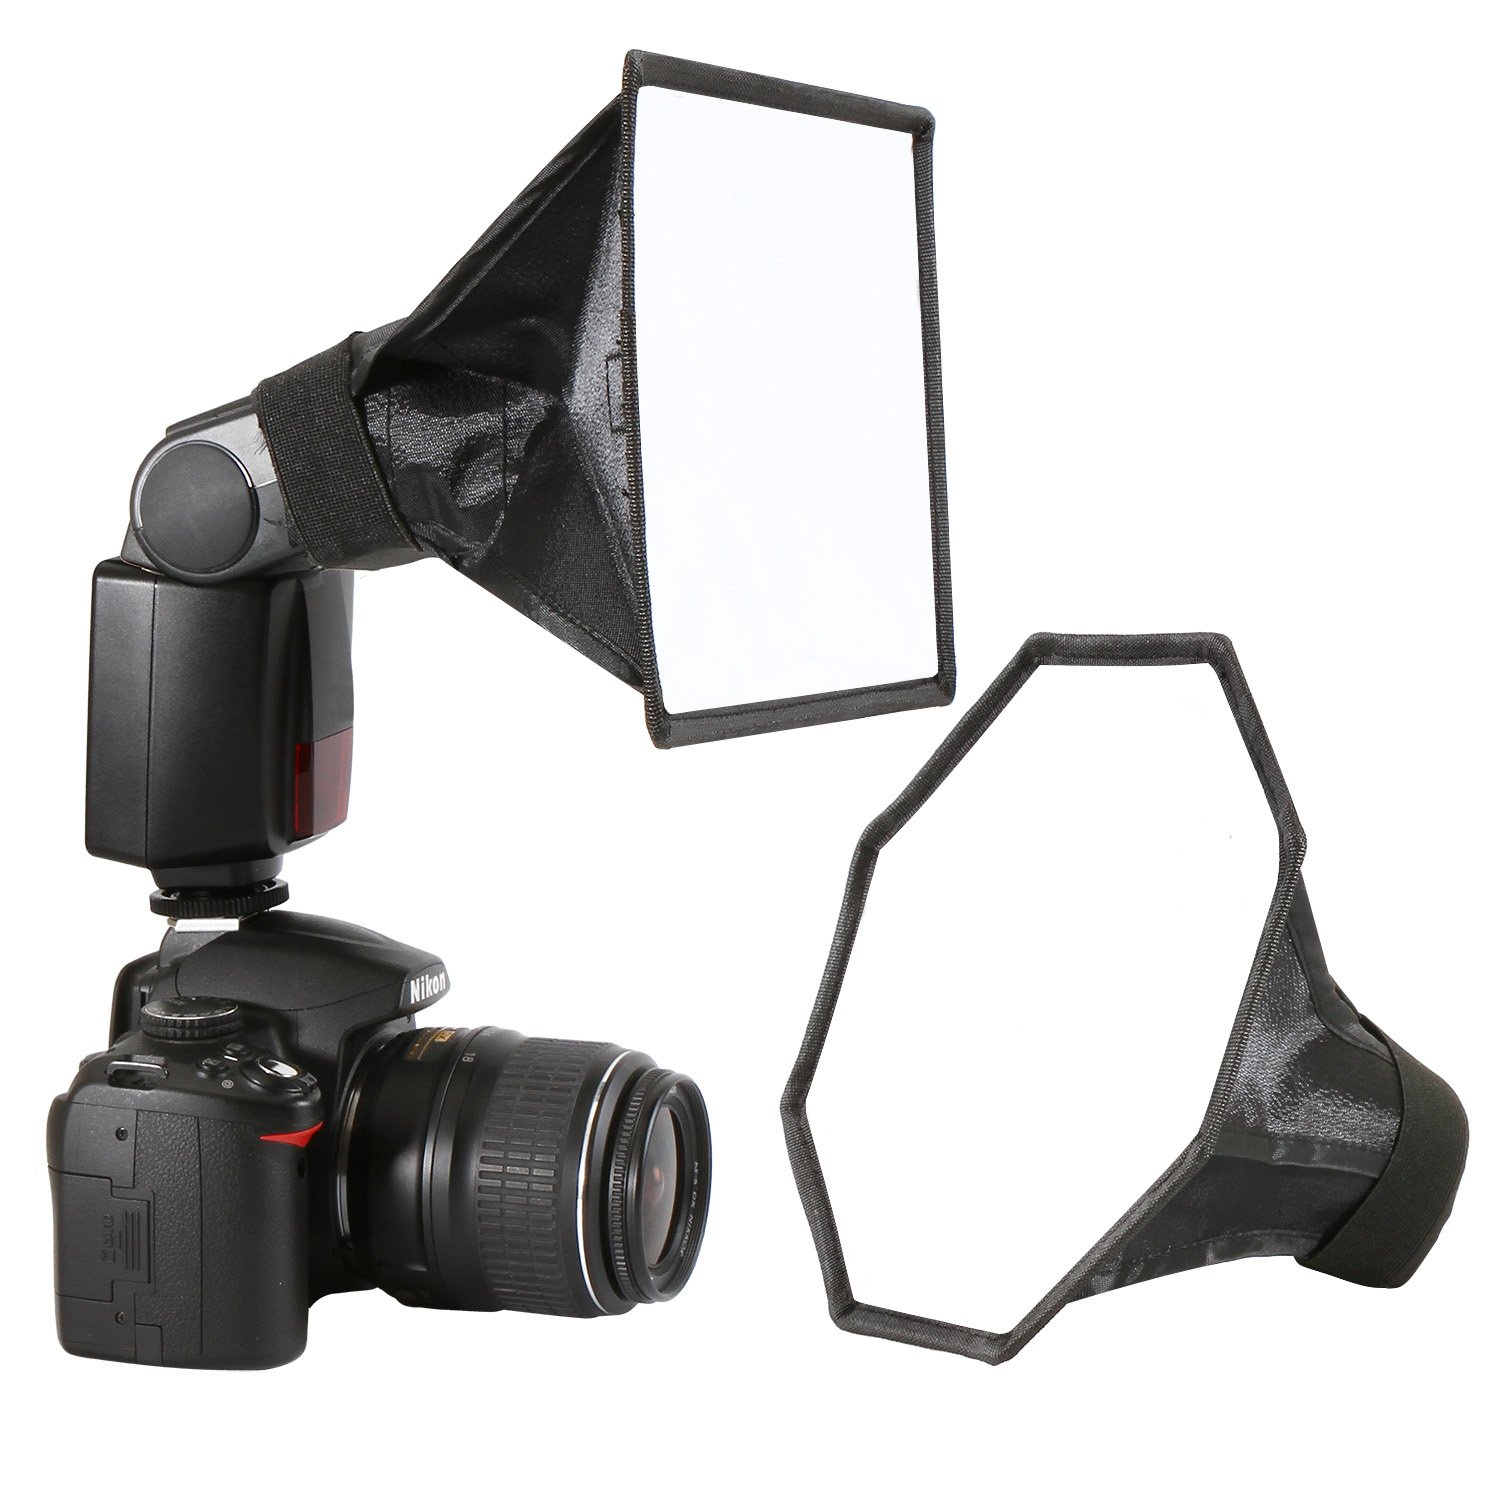 [UPGRADED] Flash Diffuser Softbox for Speedlight Kit (Universal, Collapsible with Storage Pouch) - 8''/20cm Octagon Softbox + 8''x6''/20x15cm Softbox Set for Canon, Yongnuo and Nikon Speedlight